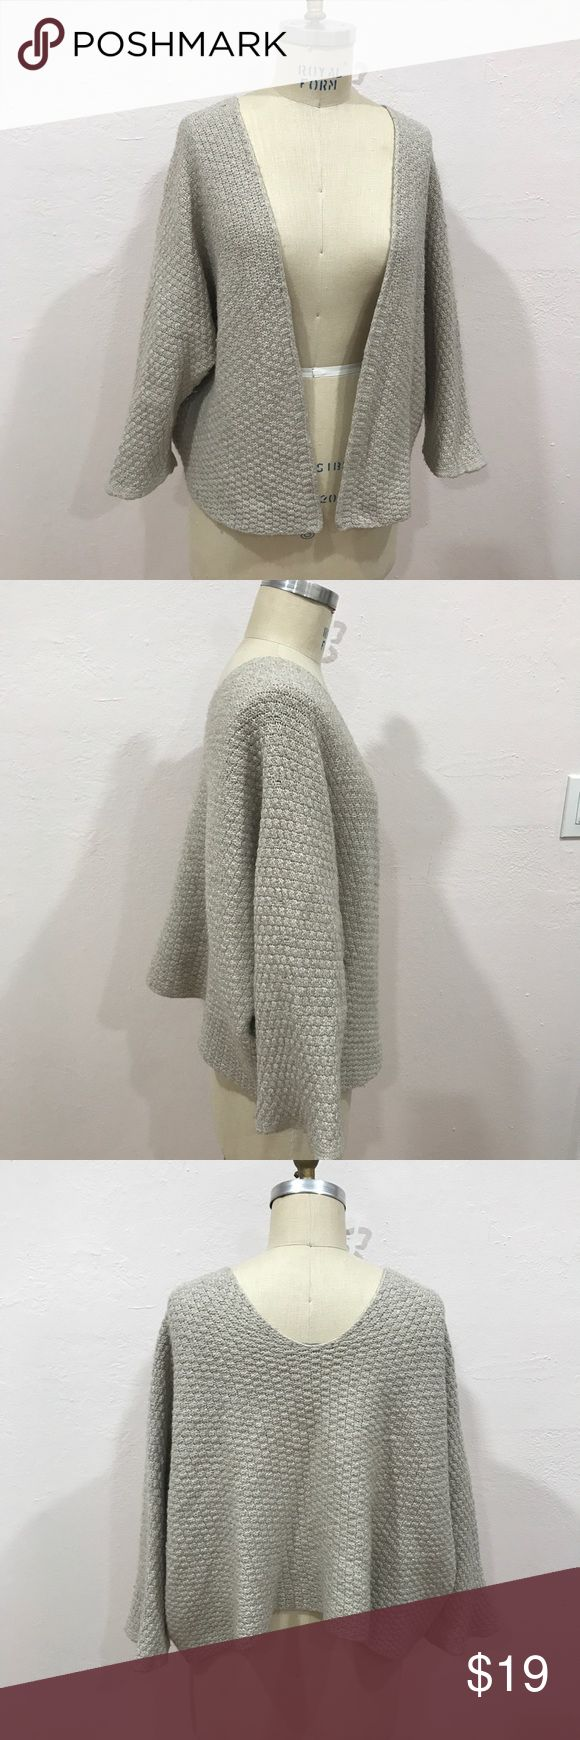 Brandy Melville Cardigan Good Quality and Condition  Beautiful style Can also wear as off-shoulder style One size Brandy Melville Sweaters Cardigans